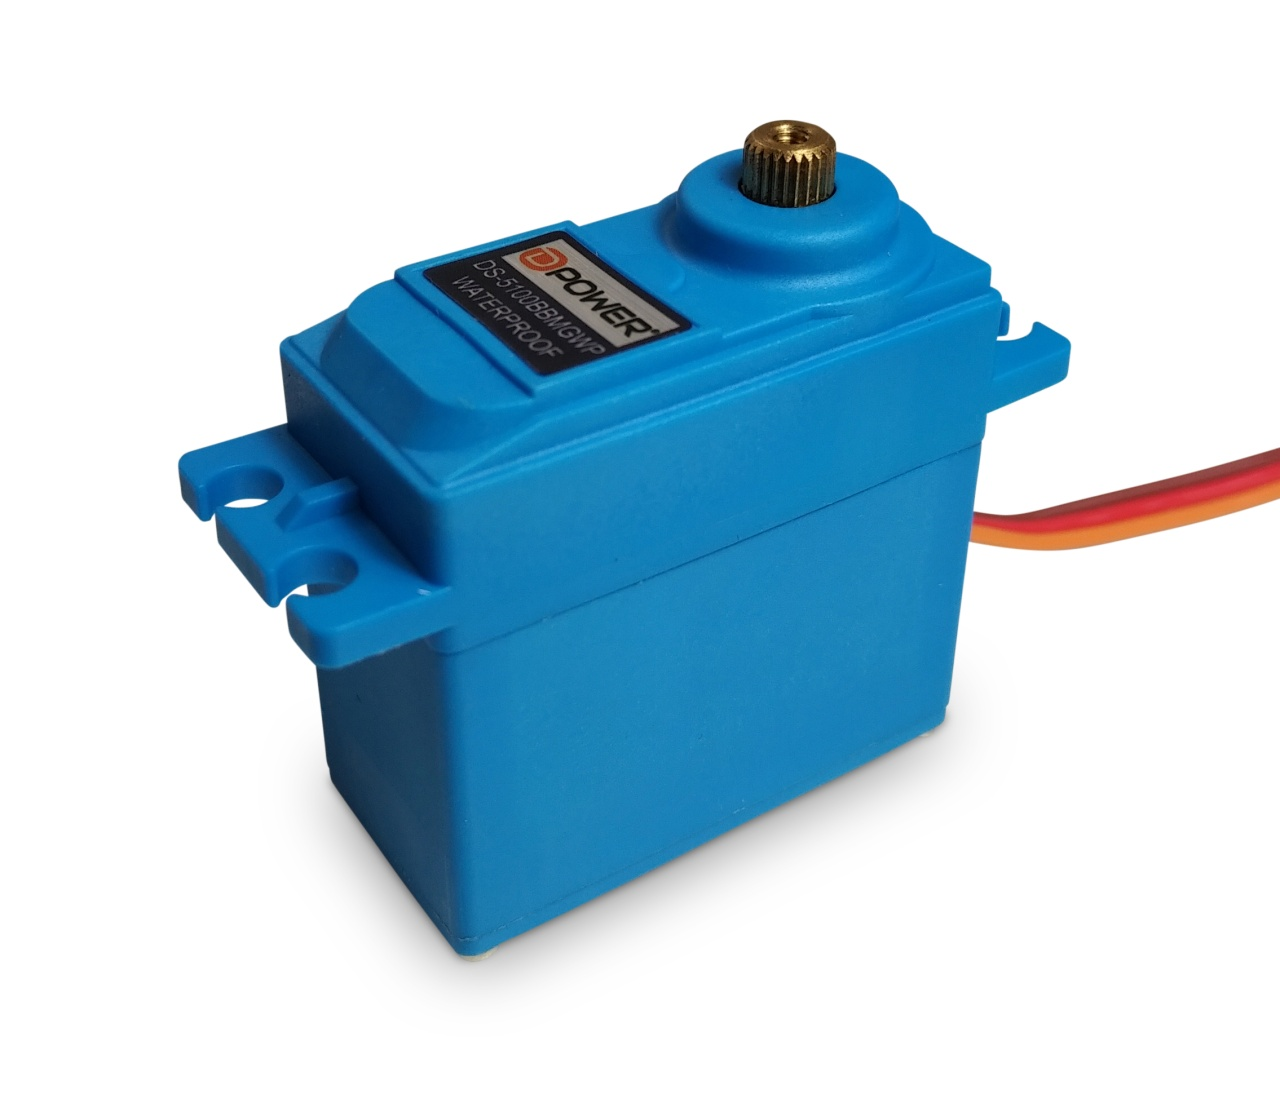 D-Power DS-5100BB MG WP- Digital-Servo